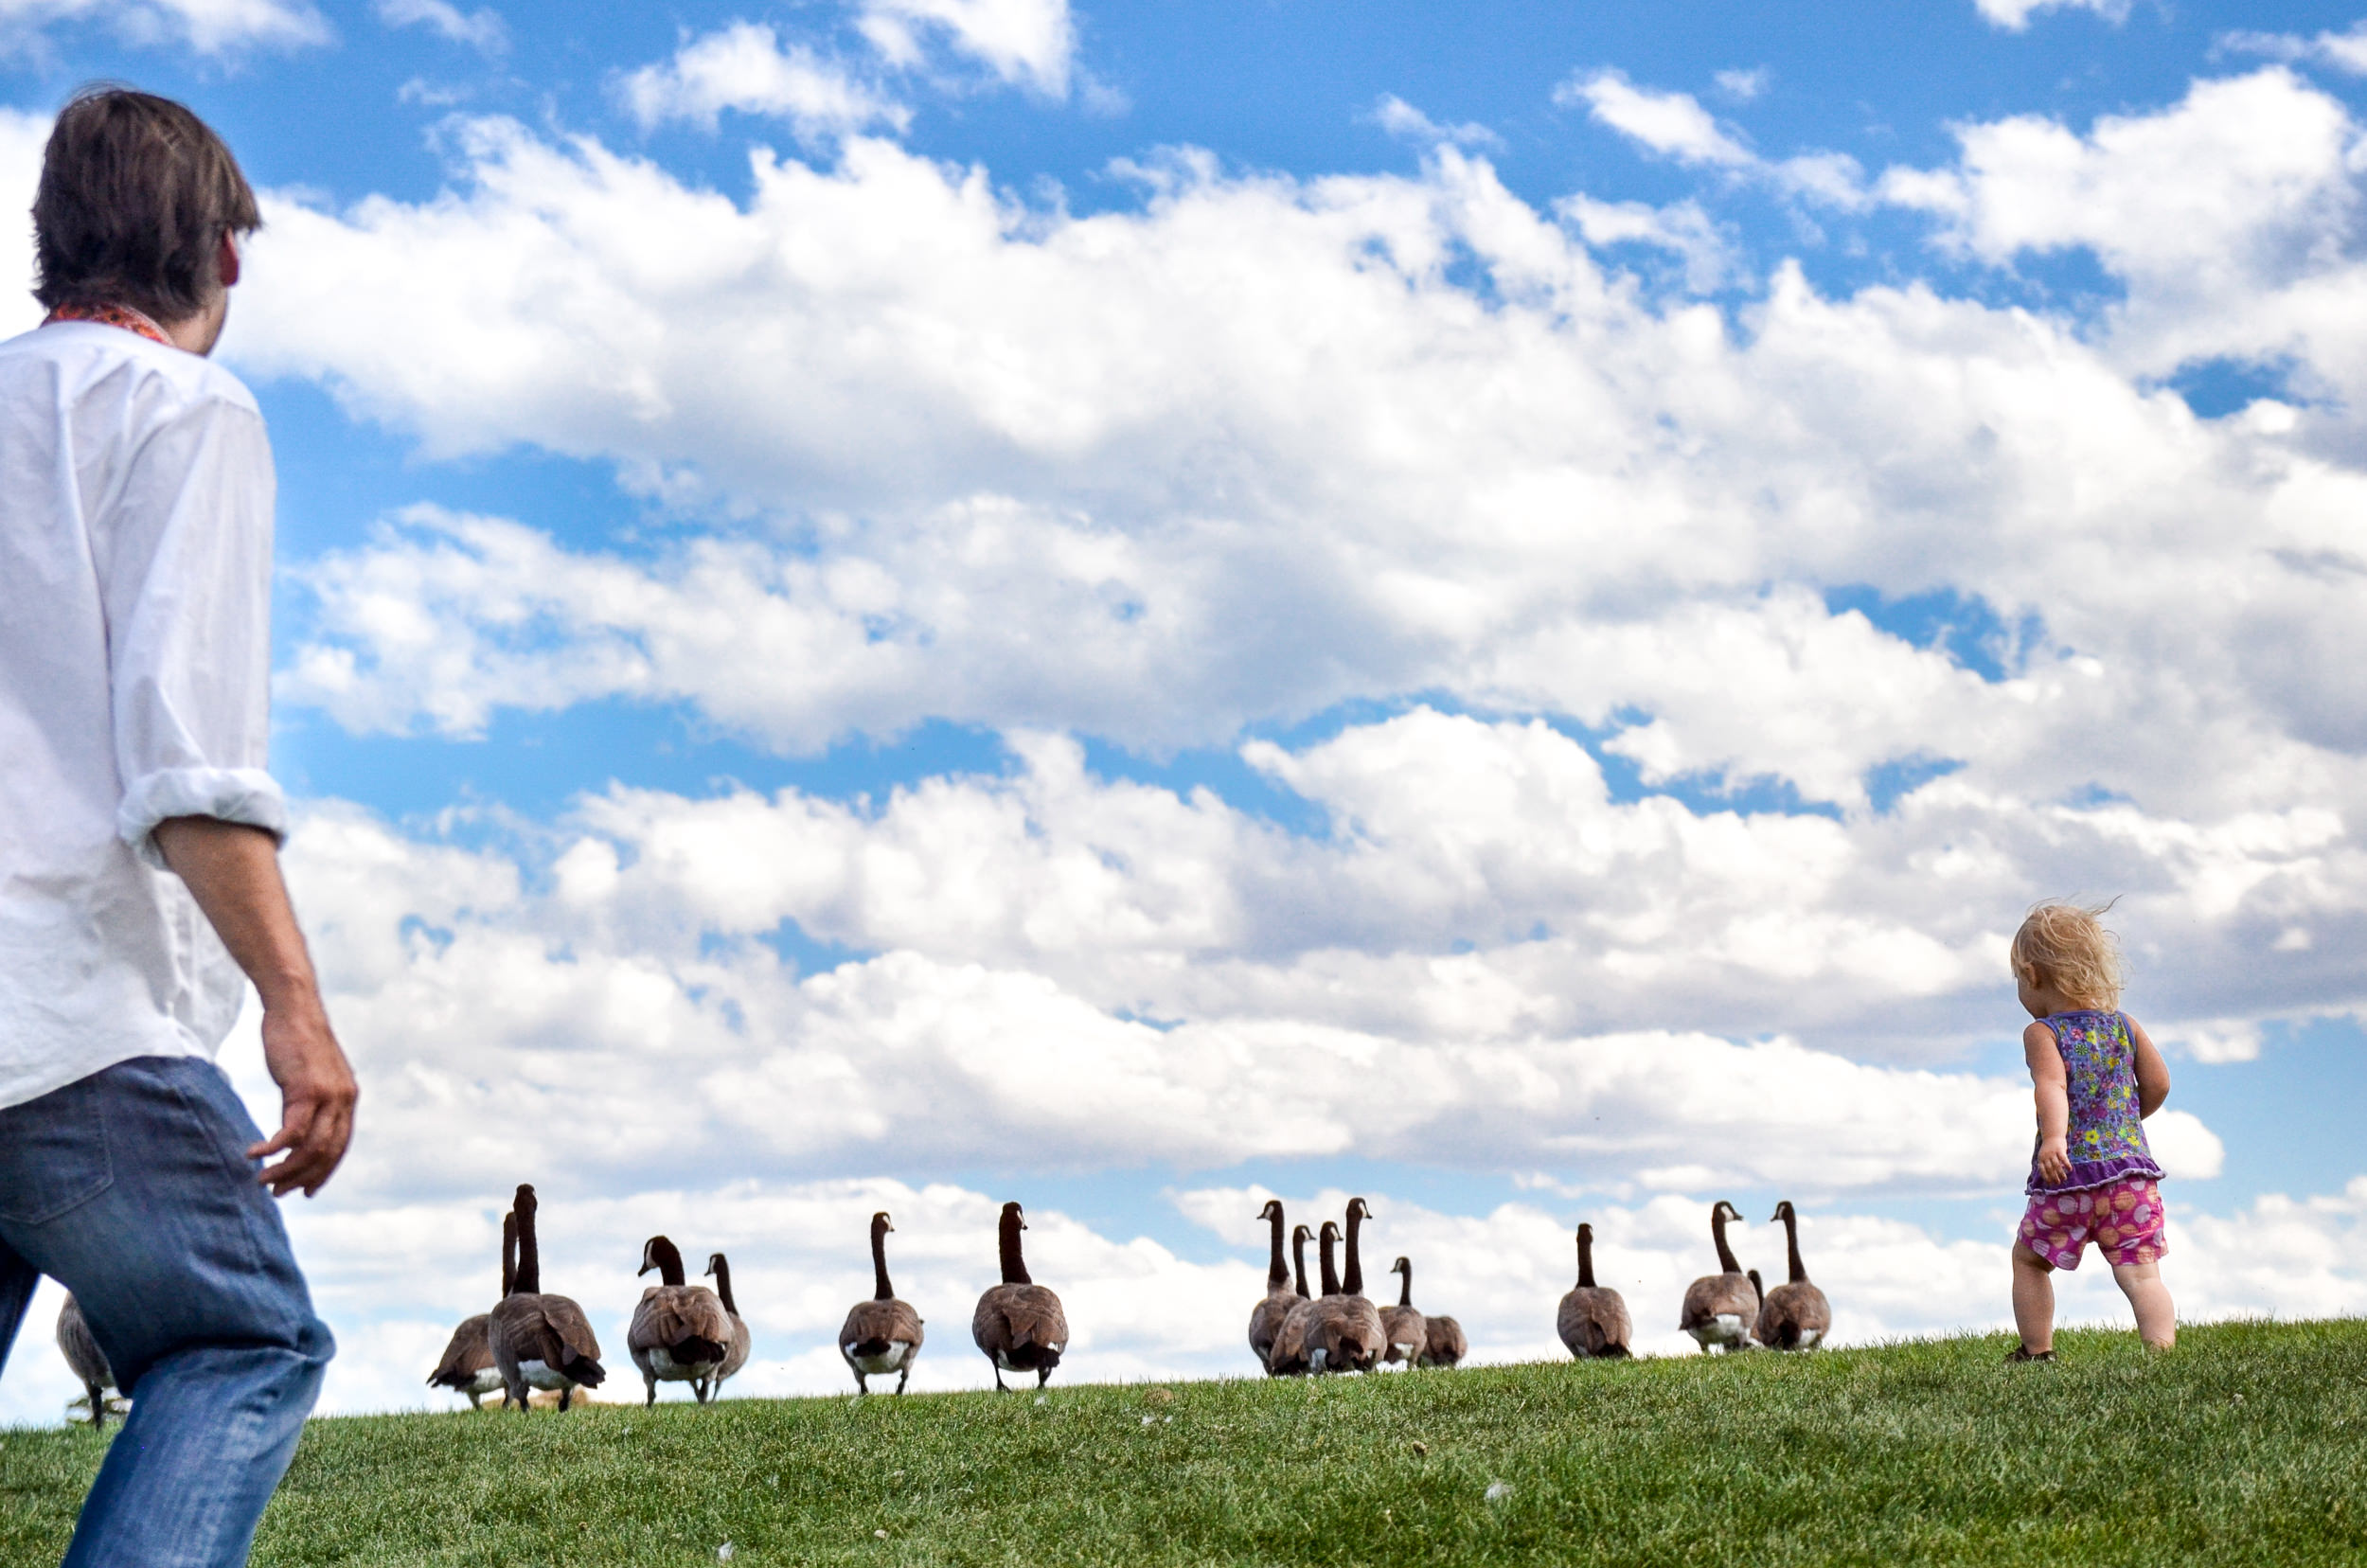 Molly Rees Photo - Documentary Family Photography in Denver, Colorado - girl chasing geese